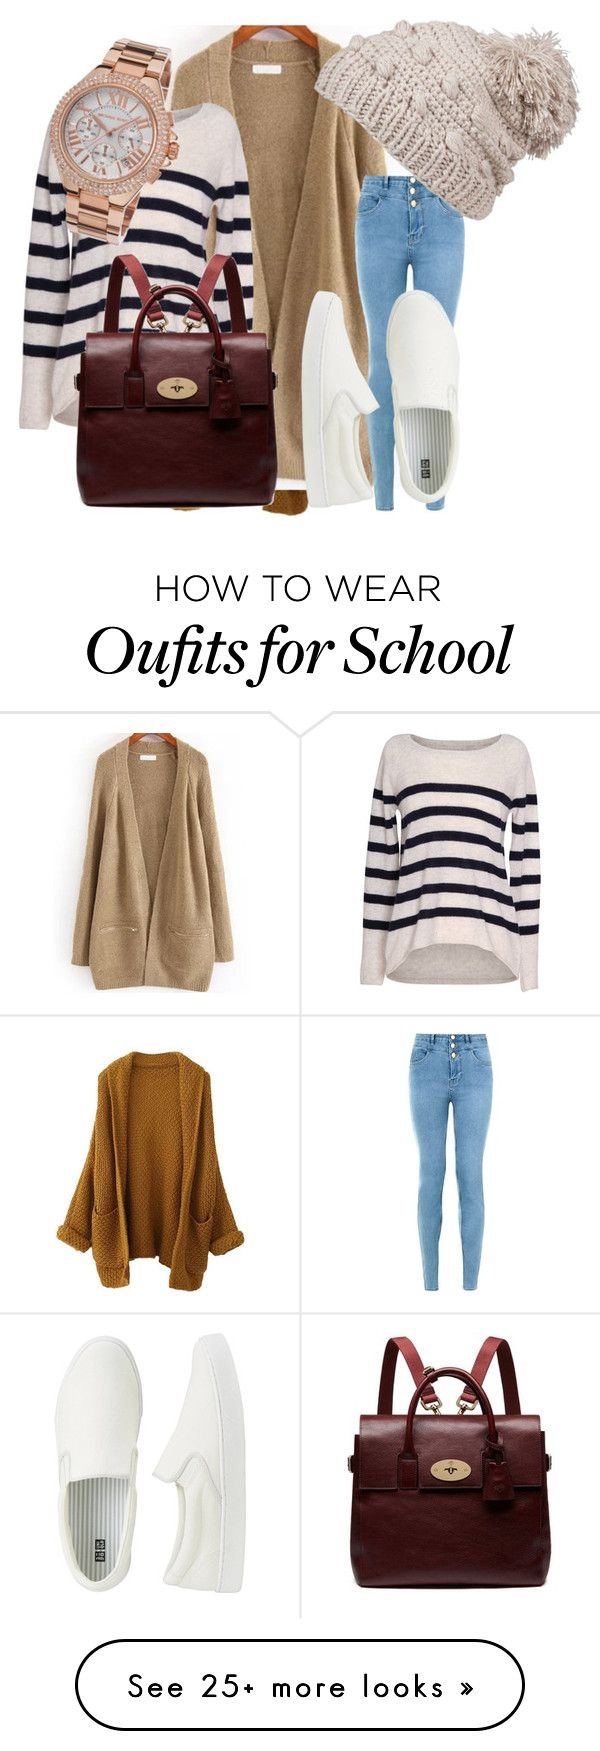 """after school"" by missedtea on Polyvore featuring Velvet by Graham & Spencer, prAna, Uniqlo, Mulberry, Michael Kors, women's clothing, women's fashion, women, female and woman"